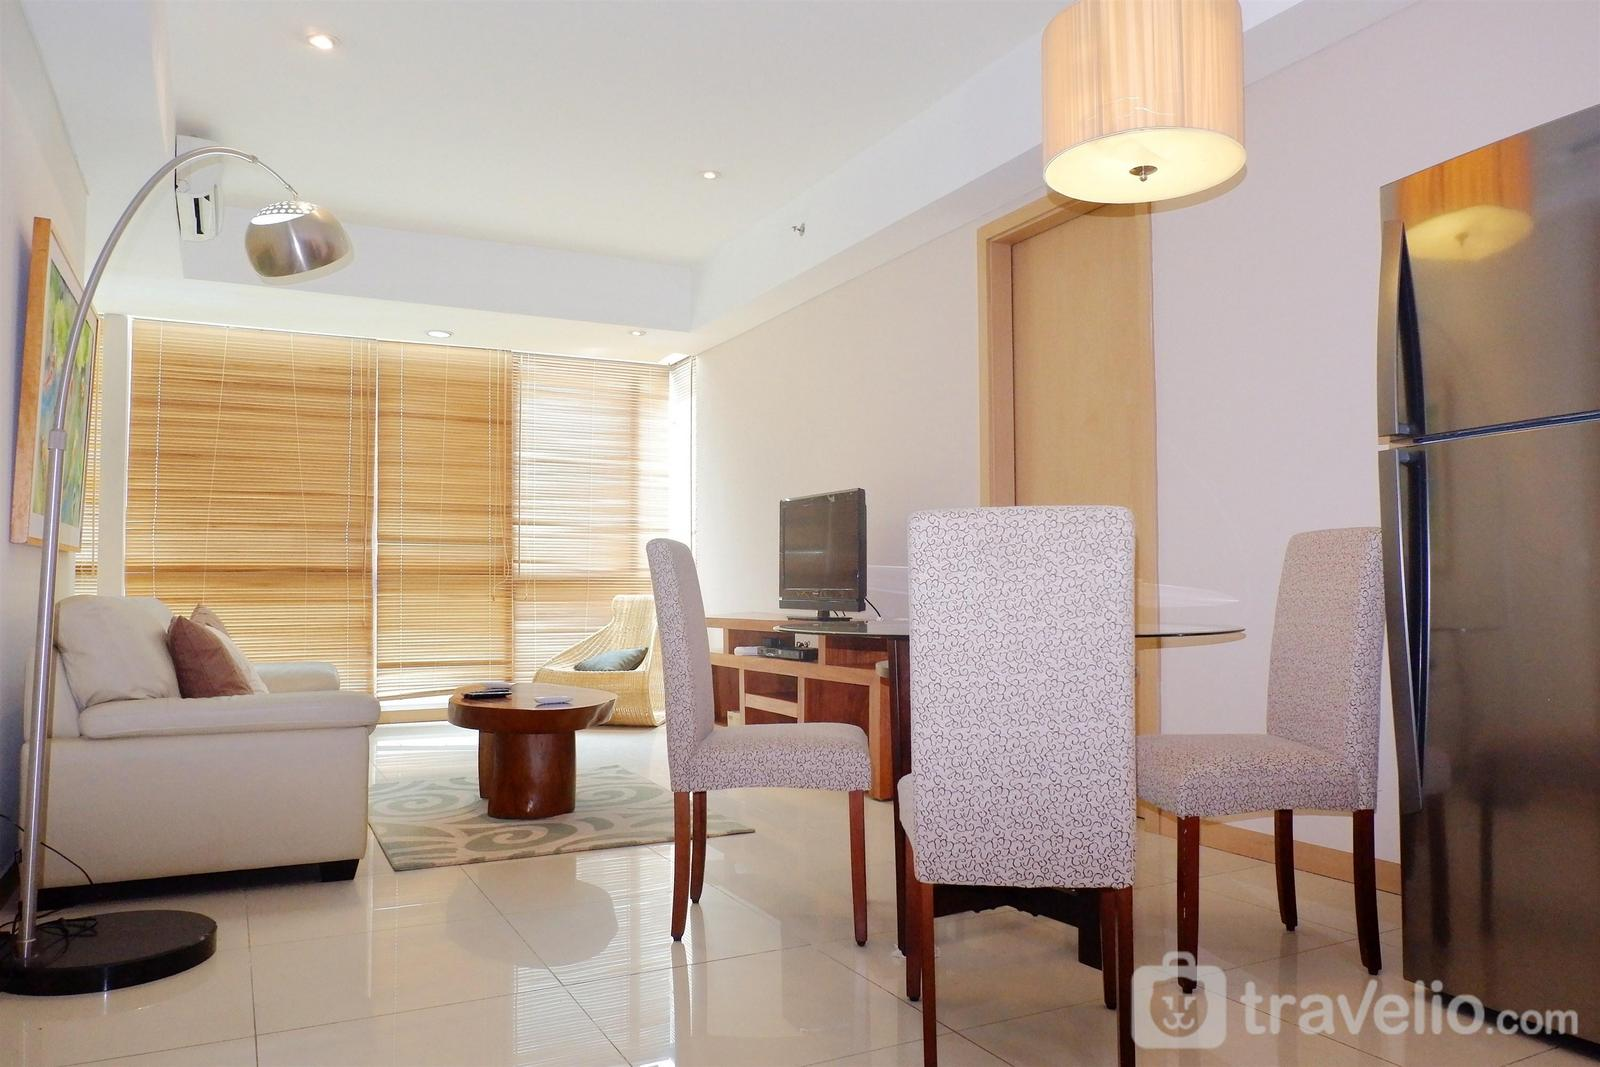 Kemang Village - 2BR Apartment Kemang Village Connect to Mall By Travelio